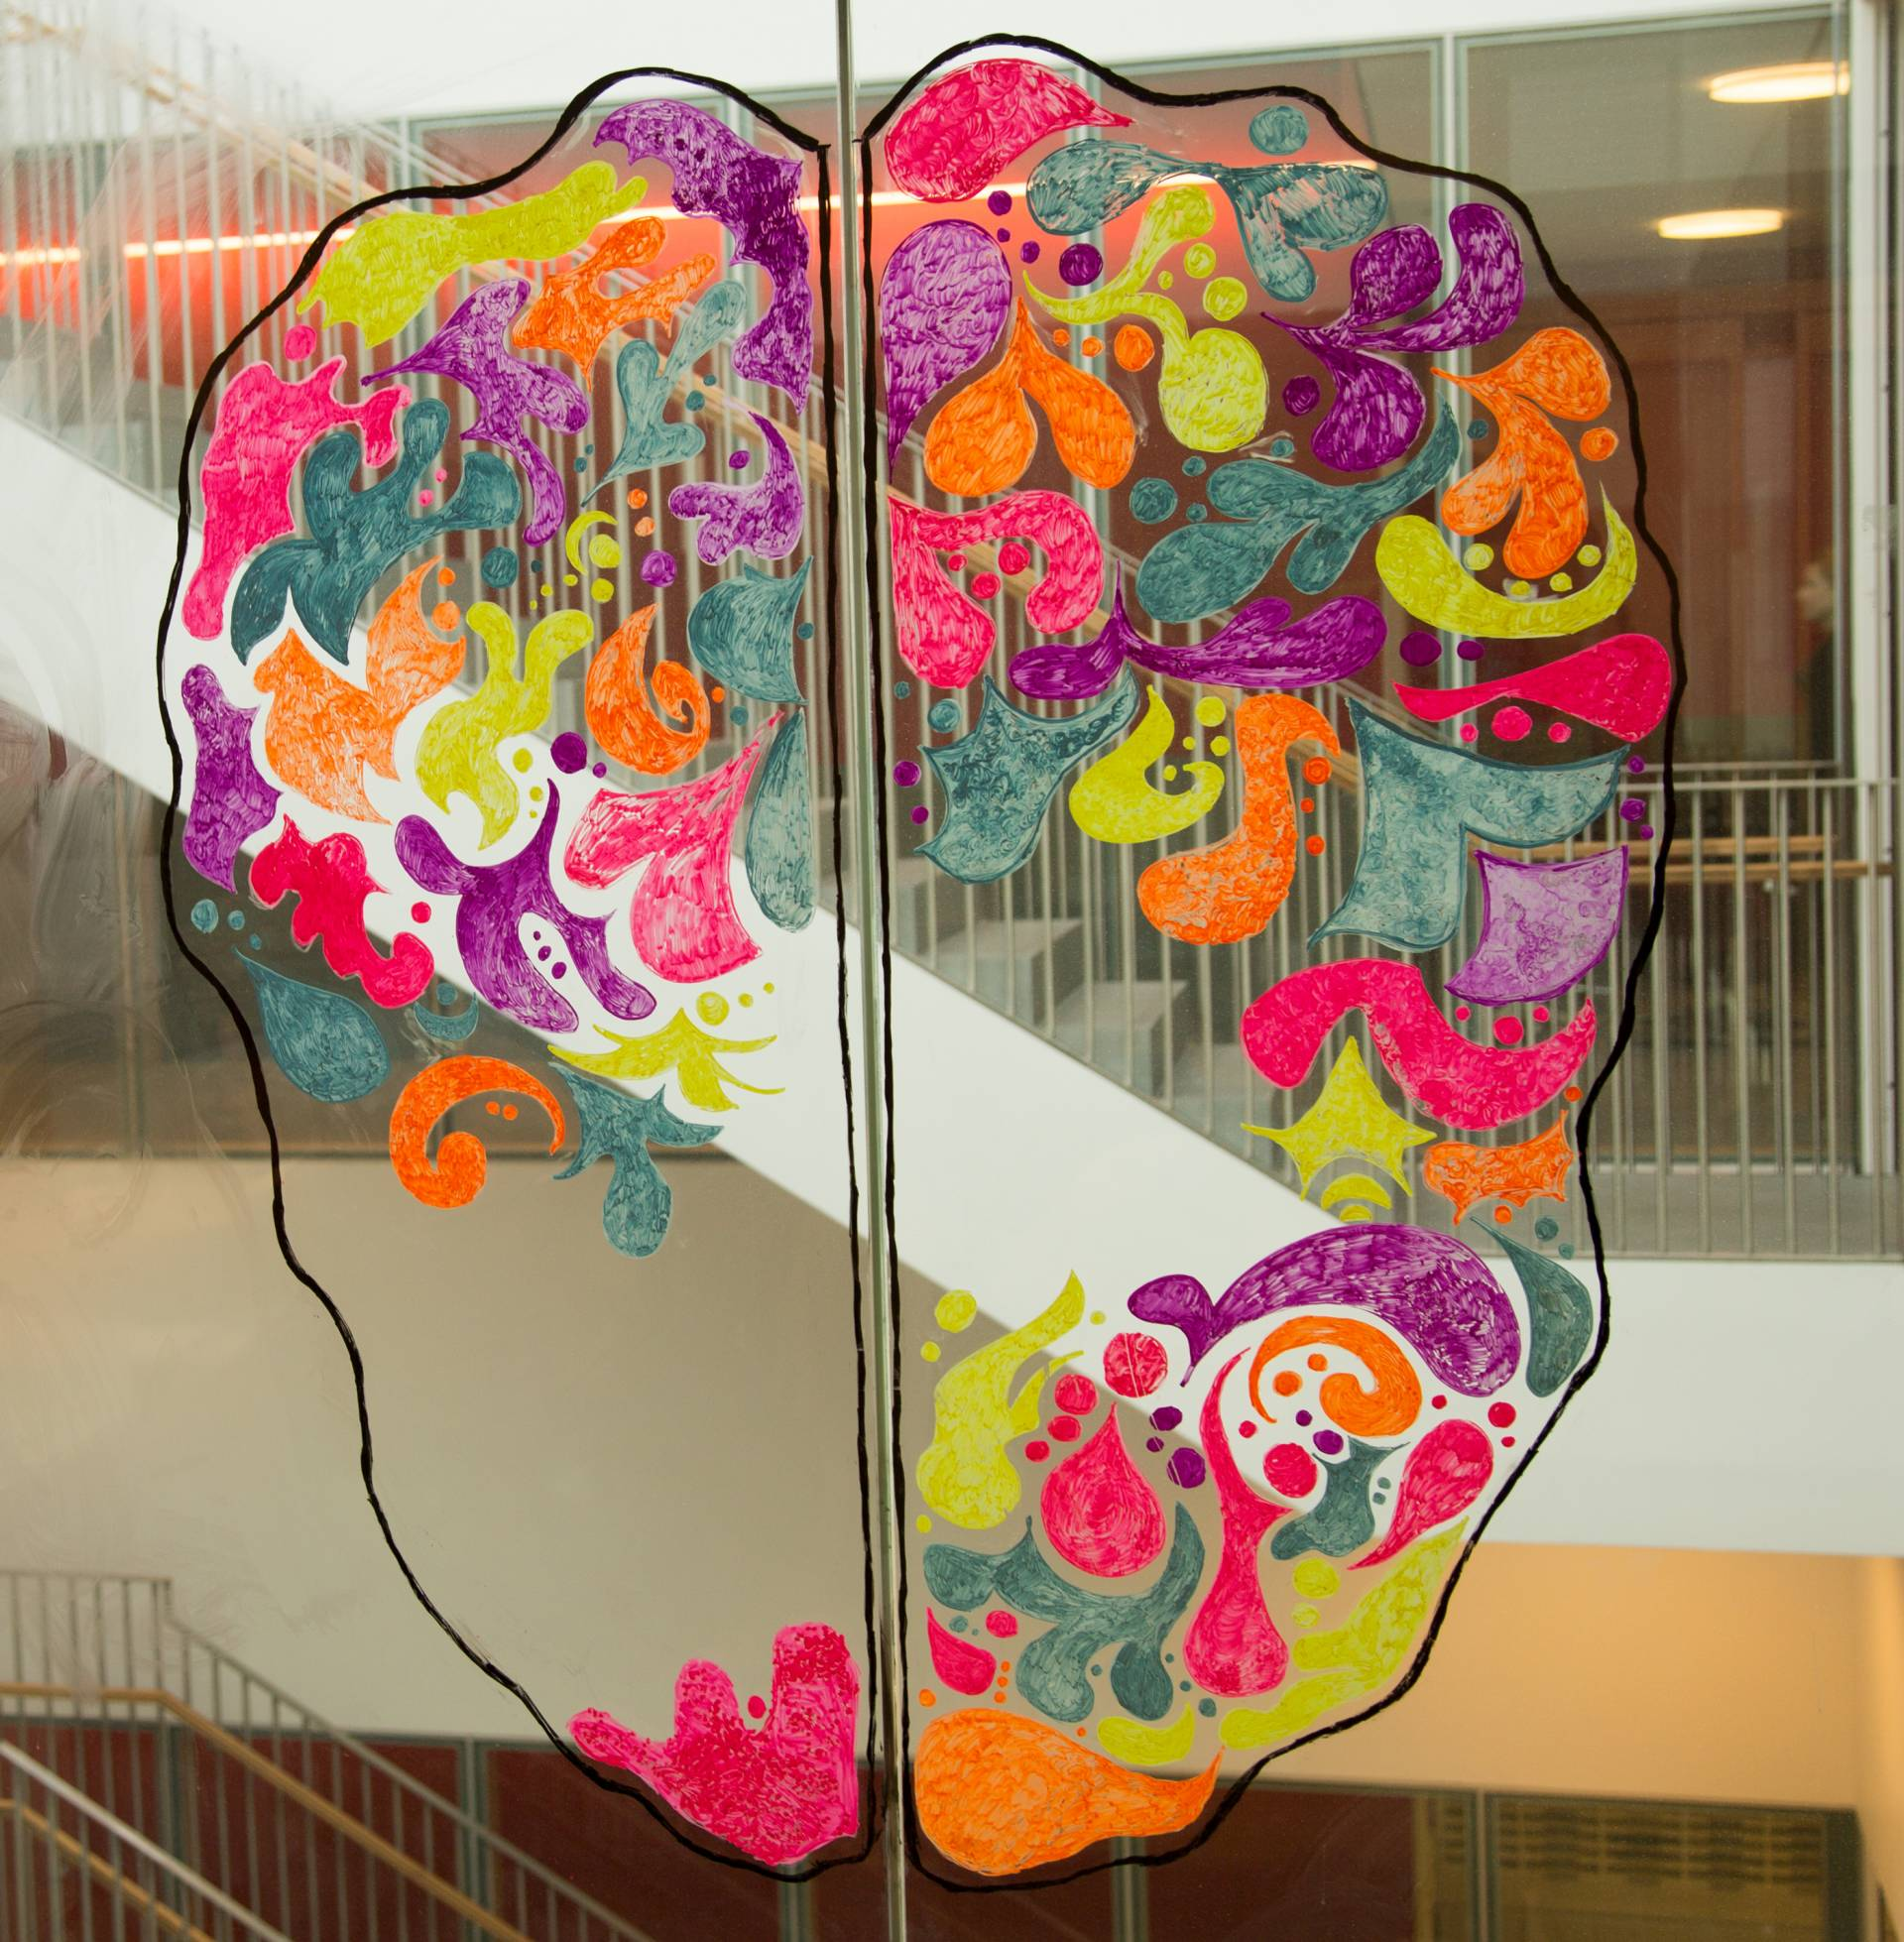 Mural on window of a colorful brain